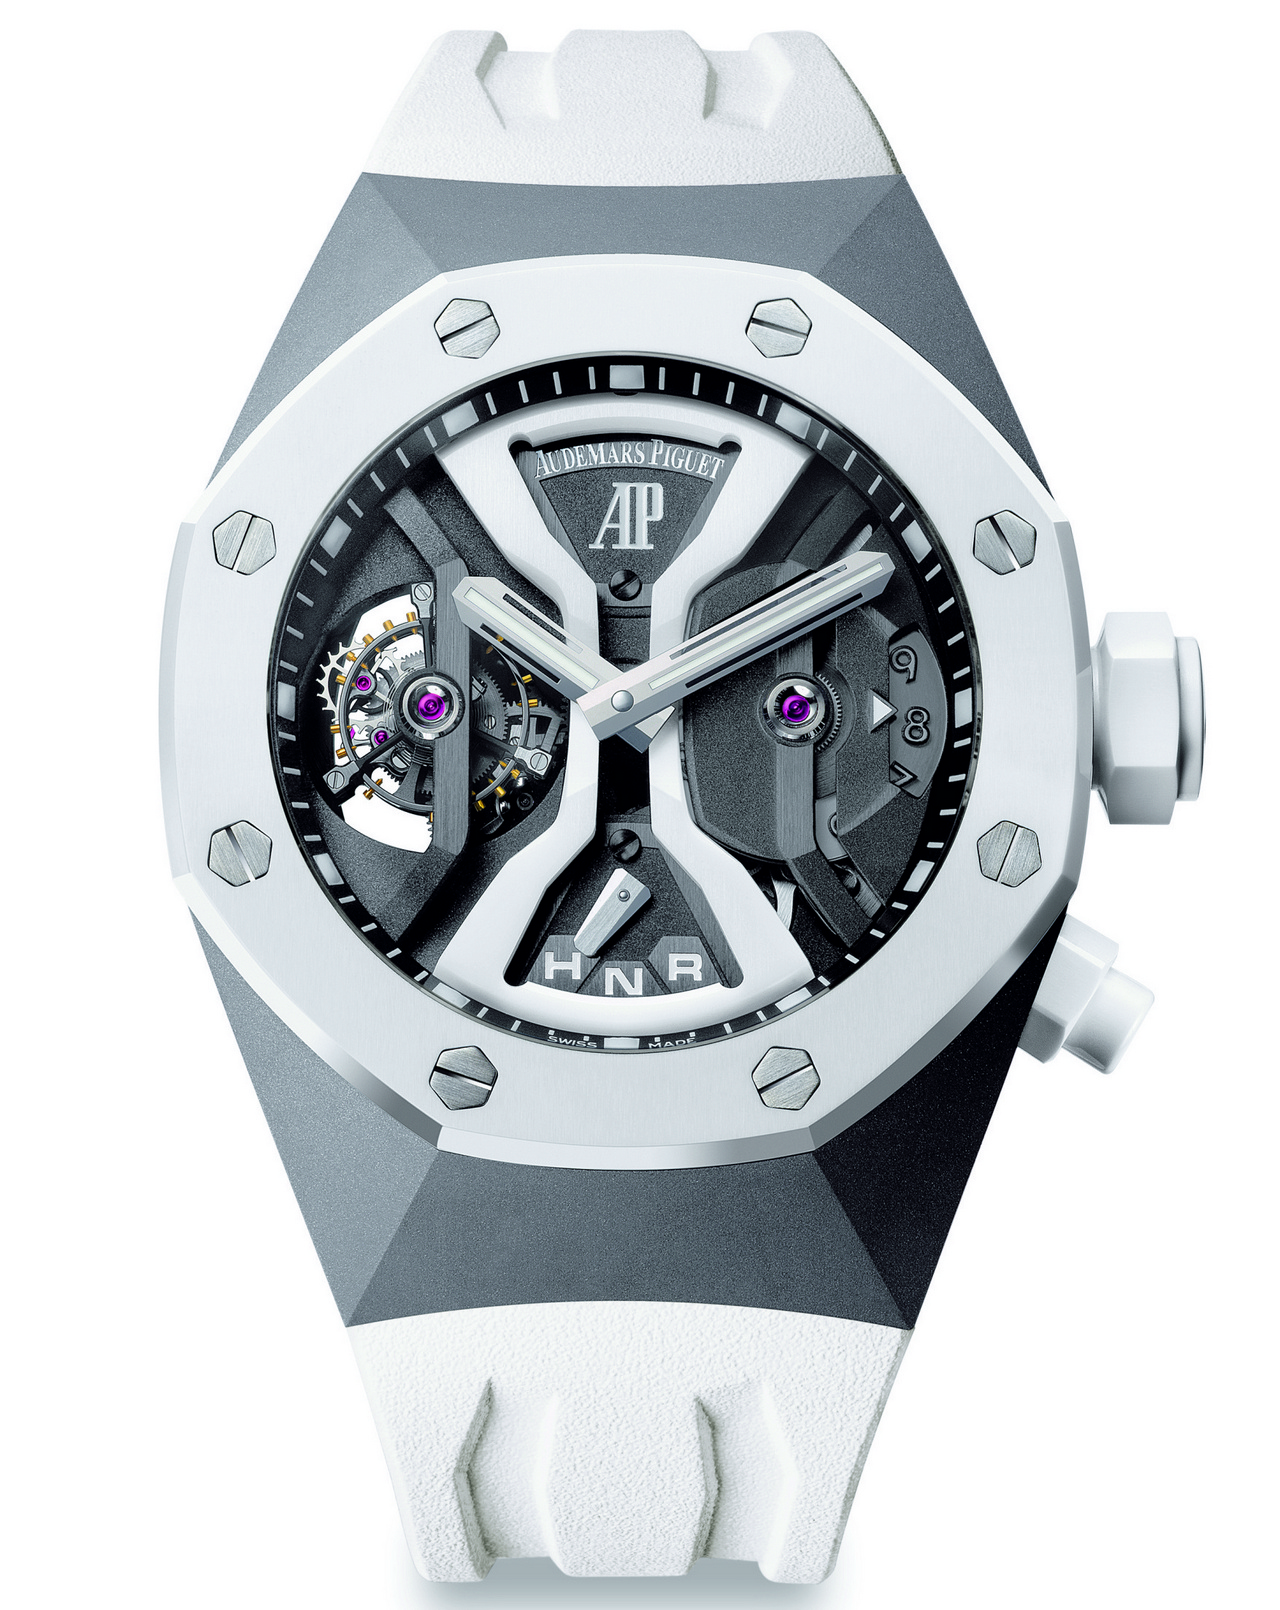 anteprima-sihh-2014-audemars-piguet-royal-oak-concept-gmt-tourbillon-0-100_1